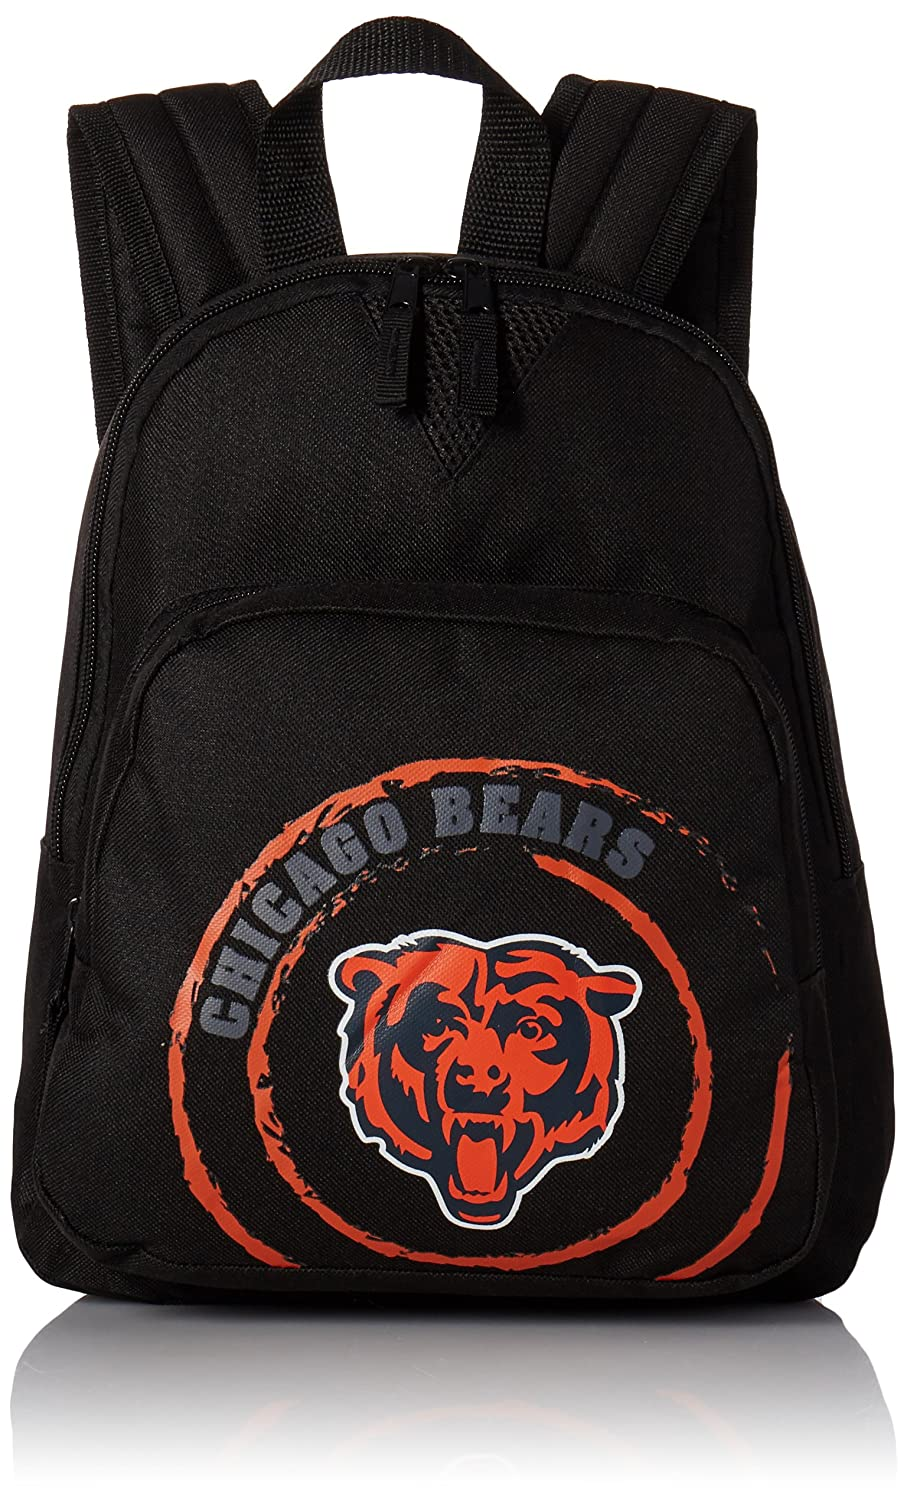 NFL Offense Mini Backpack